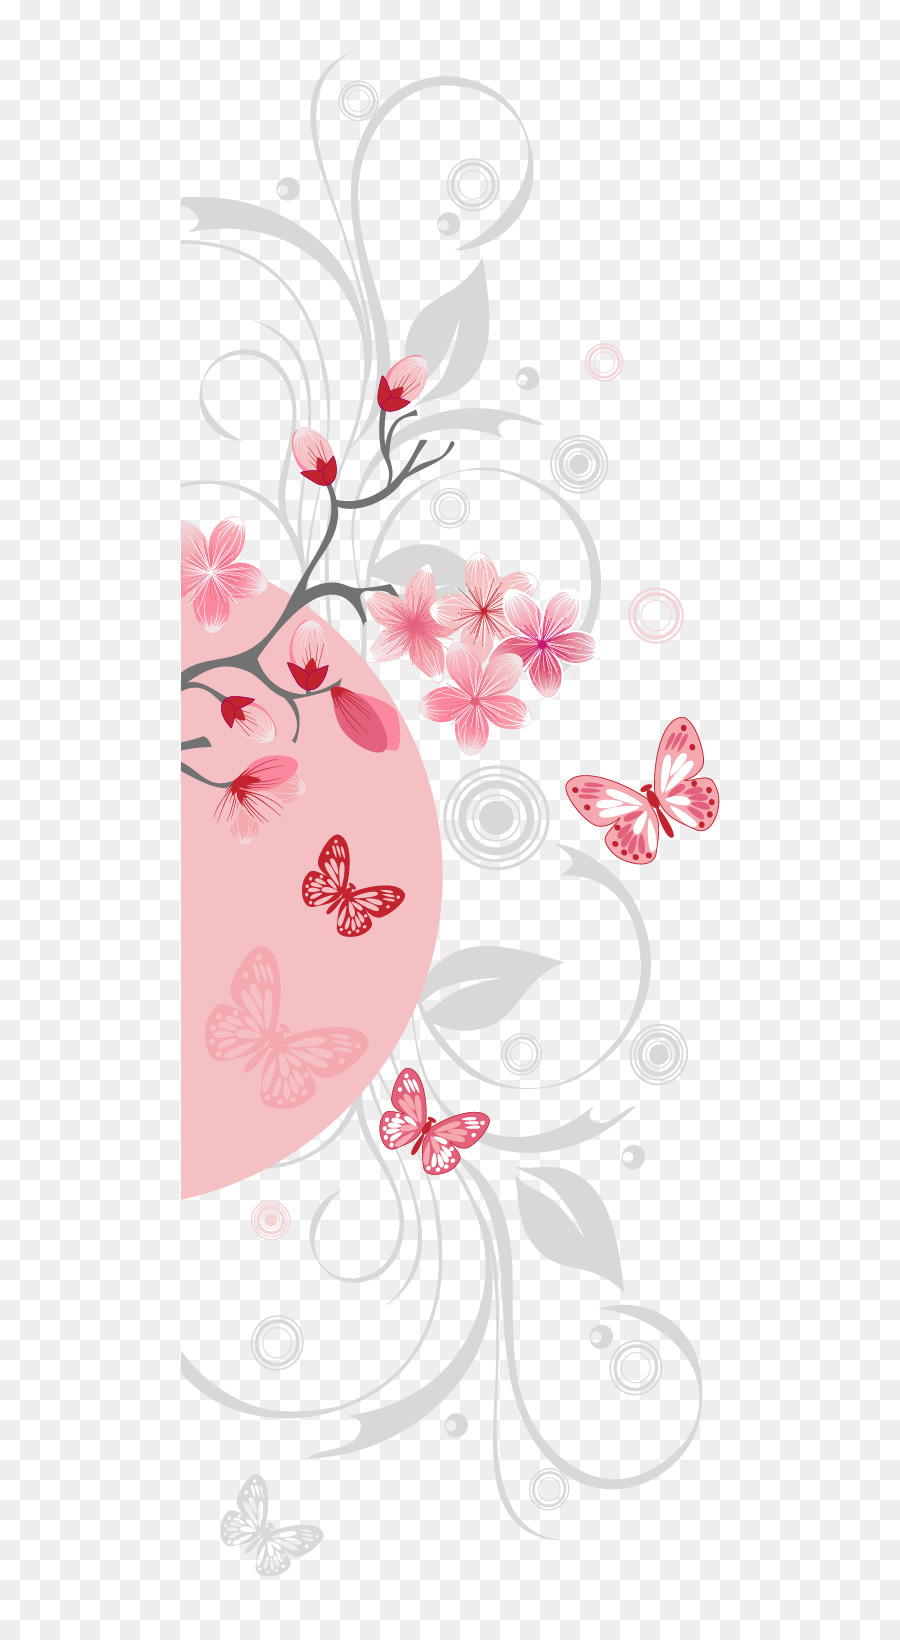 National Cherry Blossom Festival Pink Anese Blossoms Vector